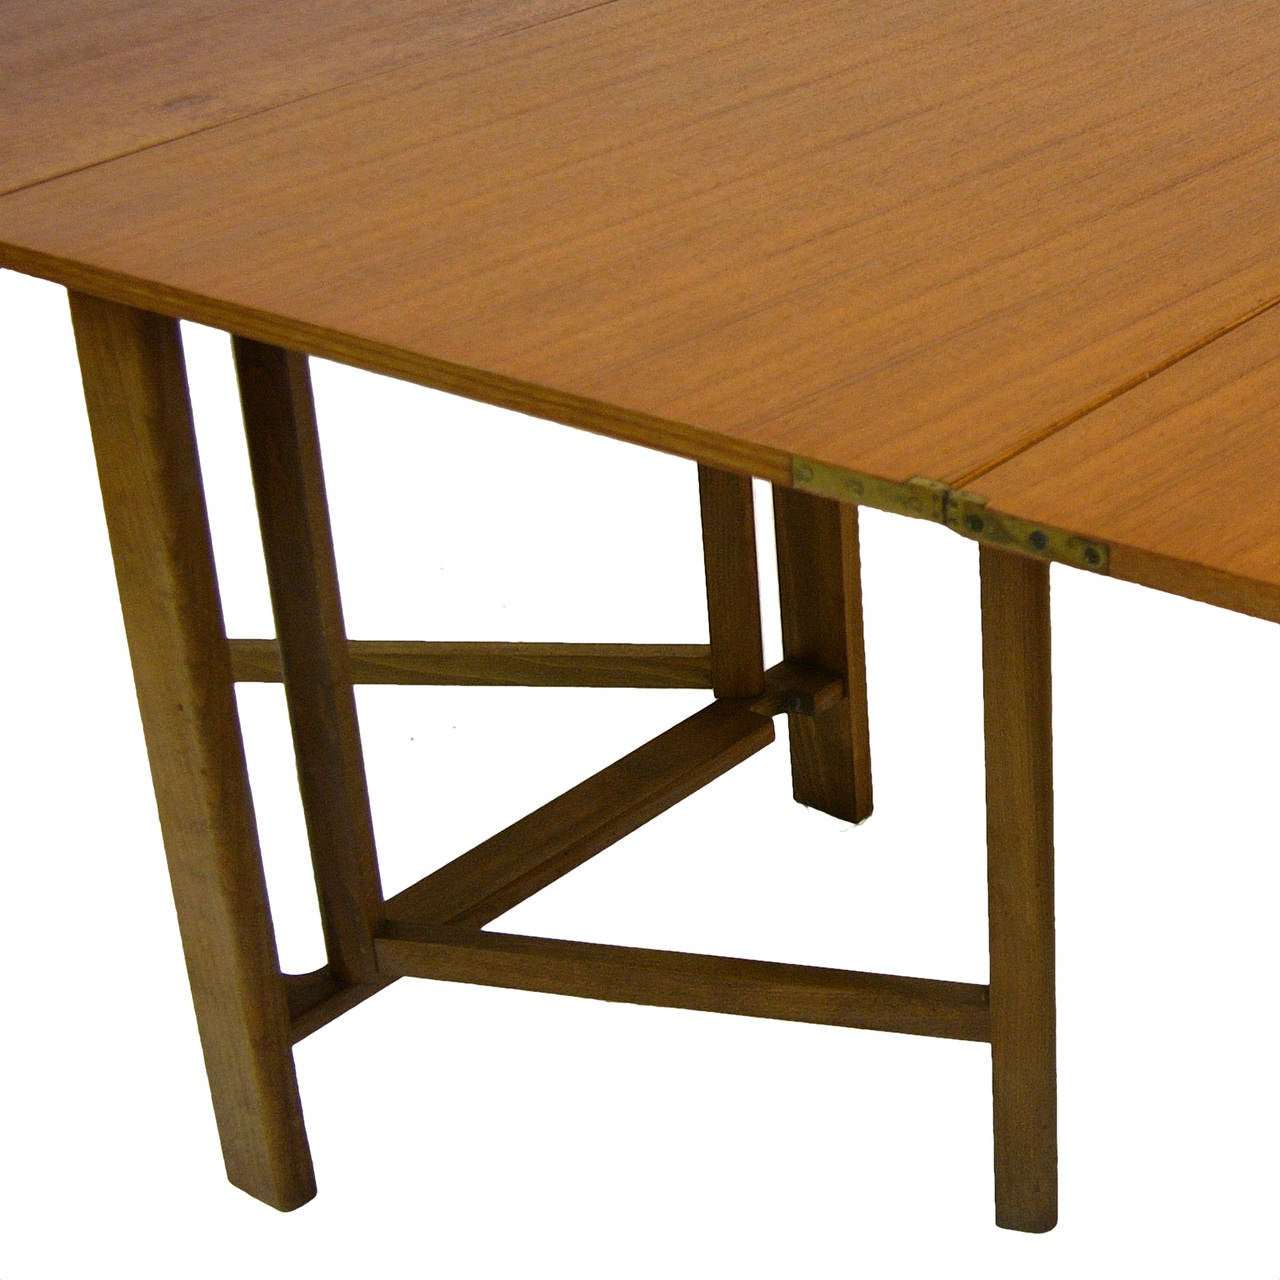 Bruno Mathsson Style Maria Drop Leaf Dining Table at 1stdibs : mathsson8l from 1stdibs.com size 1280 x 1280 jpeg 154kB